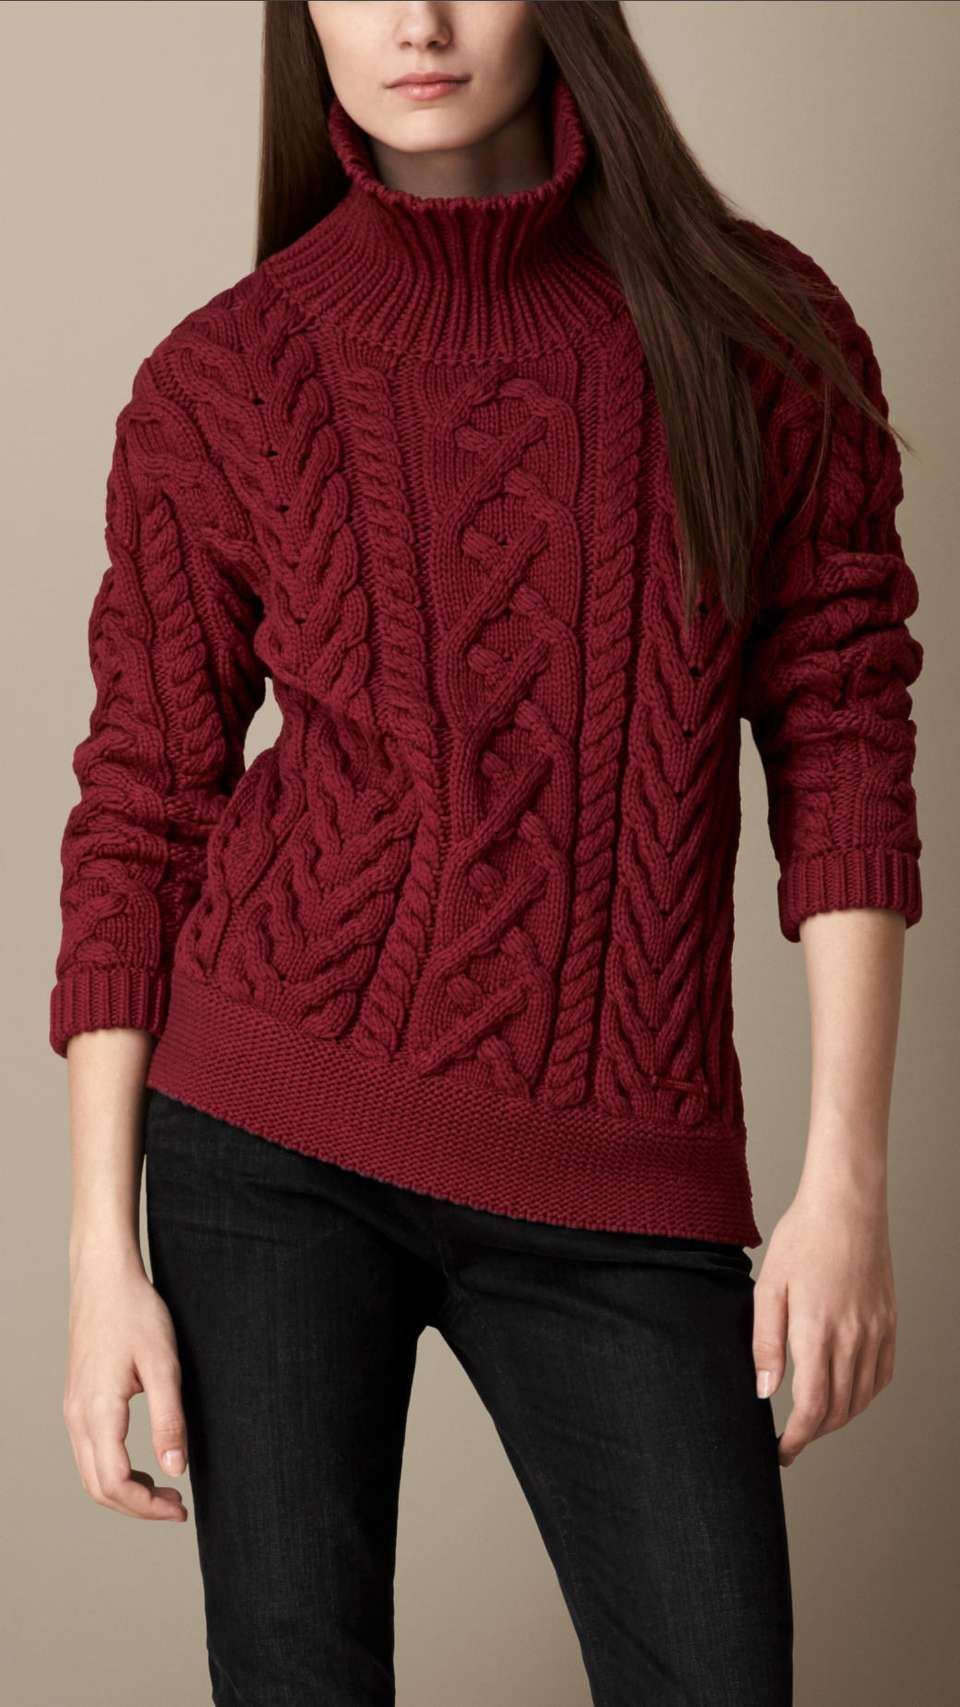 """b6b7dff4dc wantering-sweater-weather  """" Cable Knit Turtleneck Sweater Heart it on  Wantering and get an alert when it goes on sale. """""""